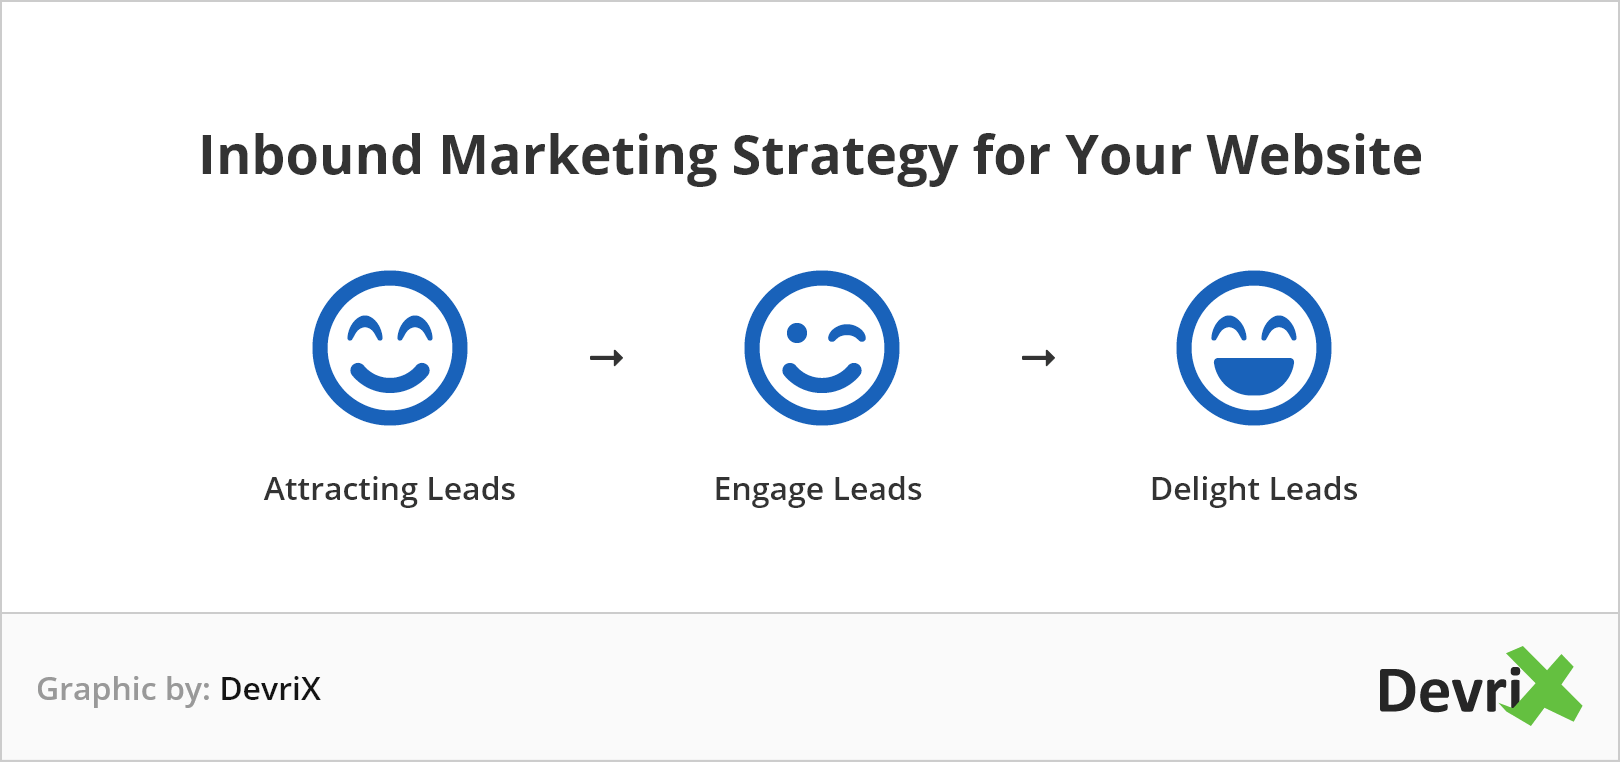 Inbound-marketing-strategy-for-your-website@2x